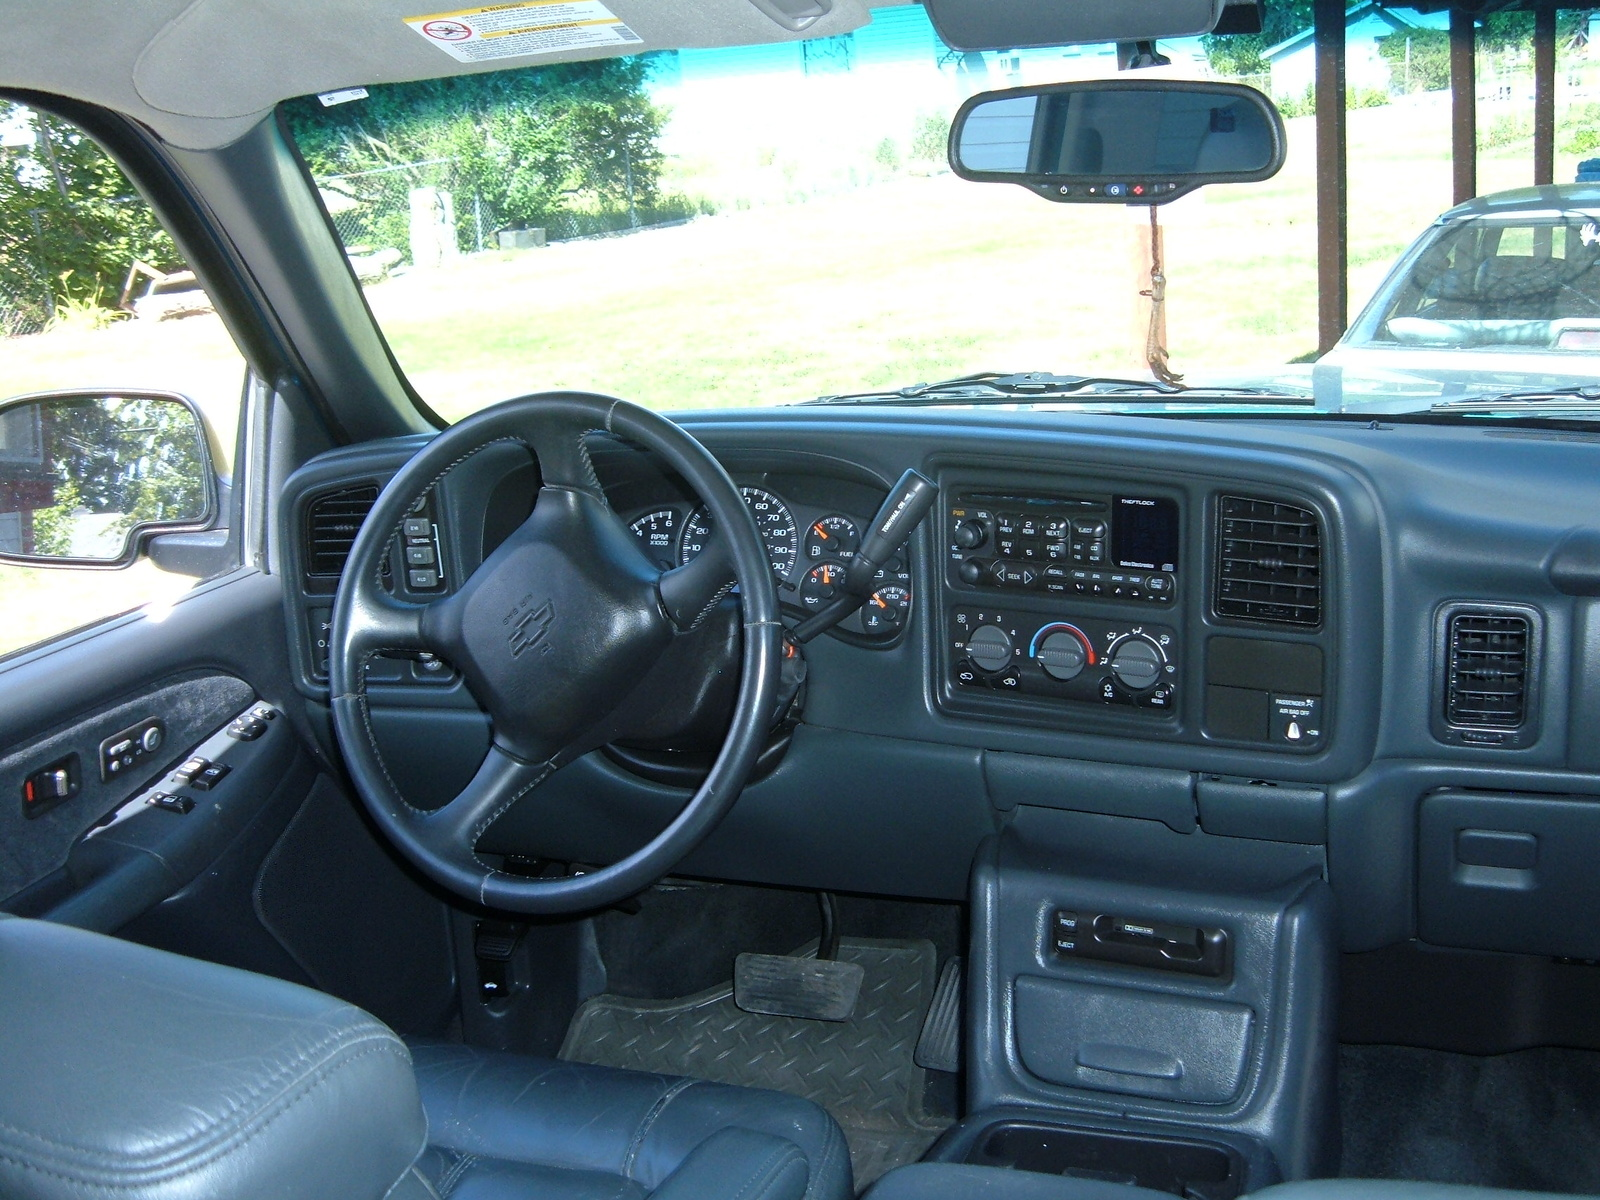 2002 chevy 1500 radio wiring diagram 1993 toyota celica chevrolet silverado information and photos